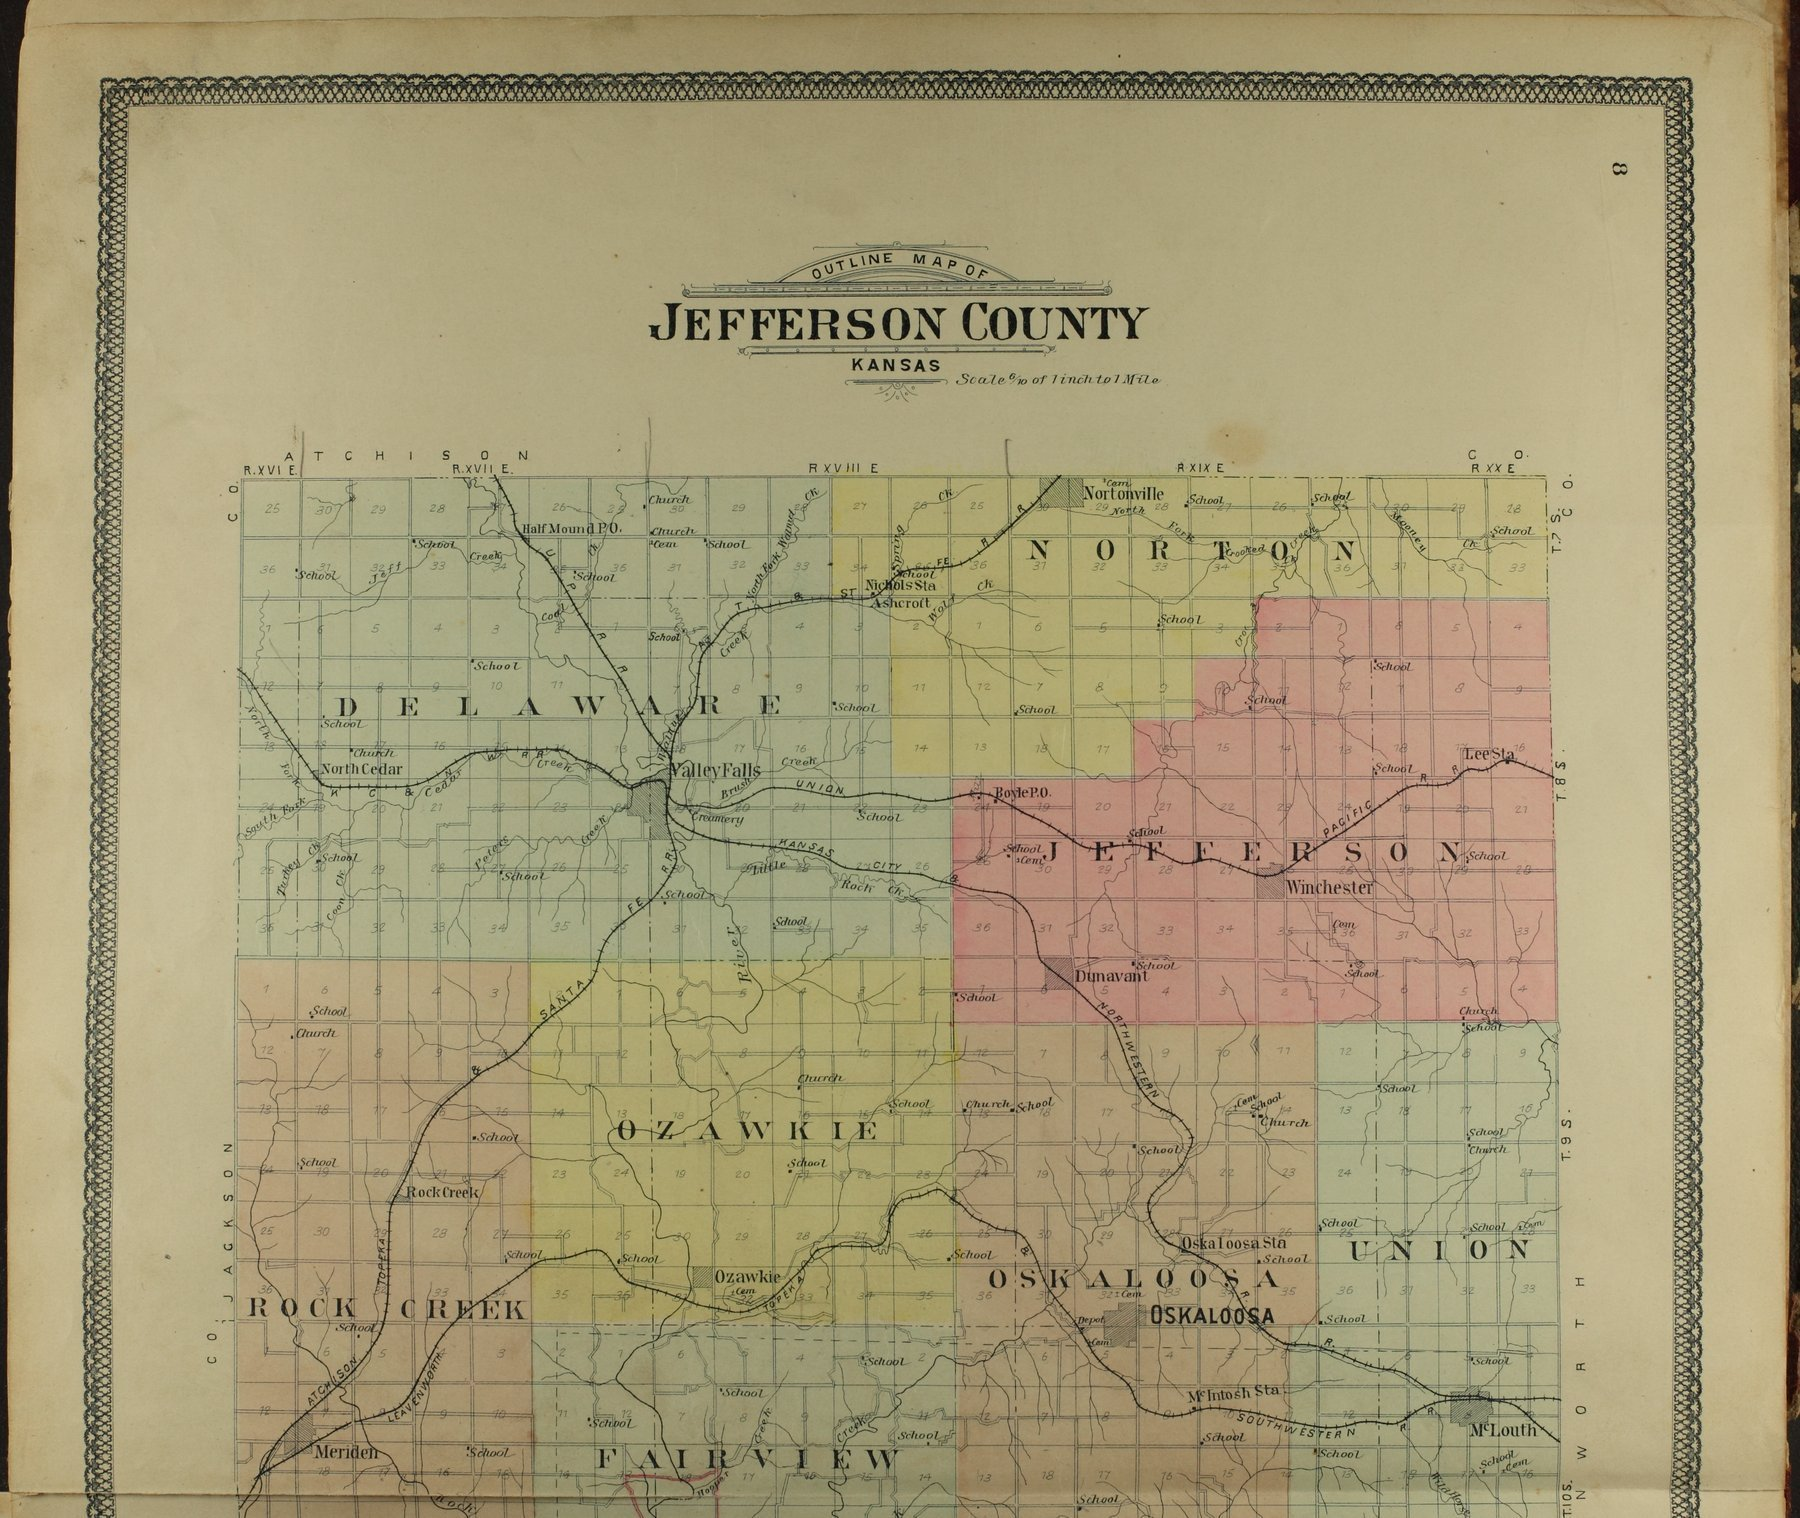 Descriptive atlas of Jefferson County, Kansas - 8